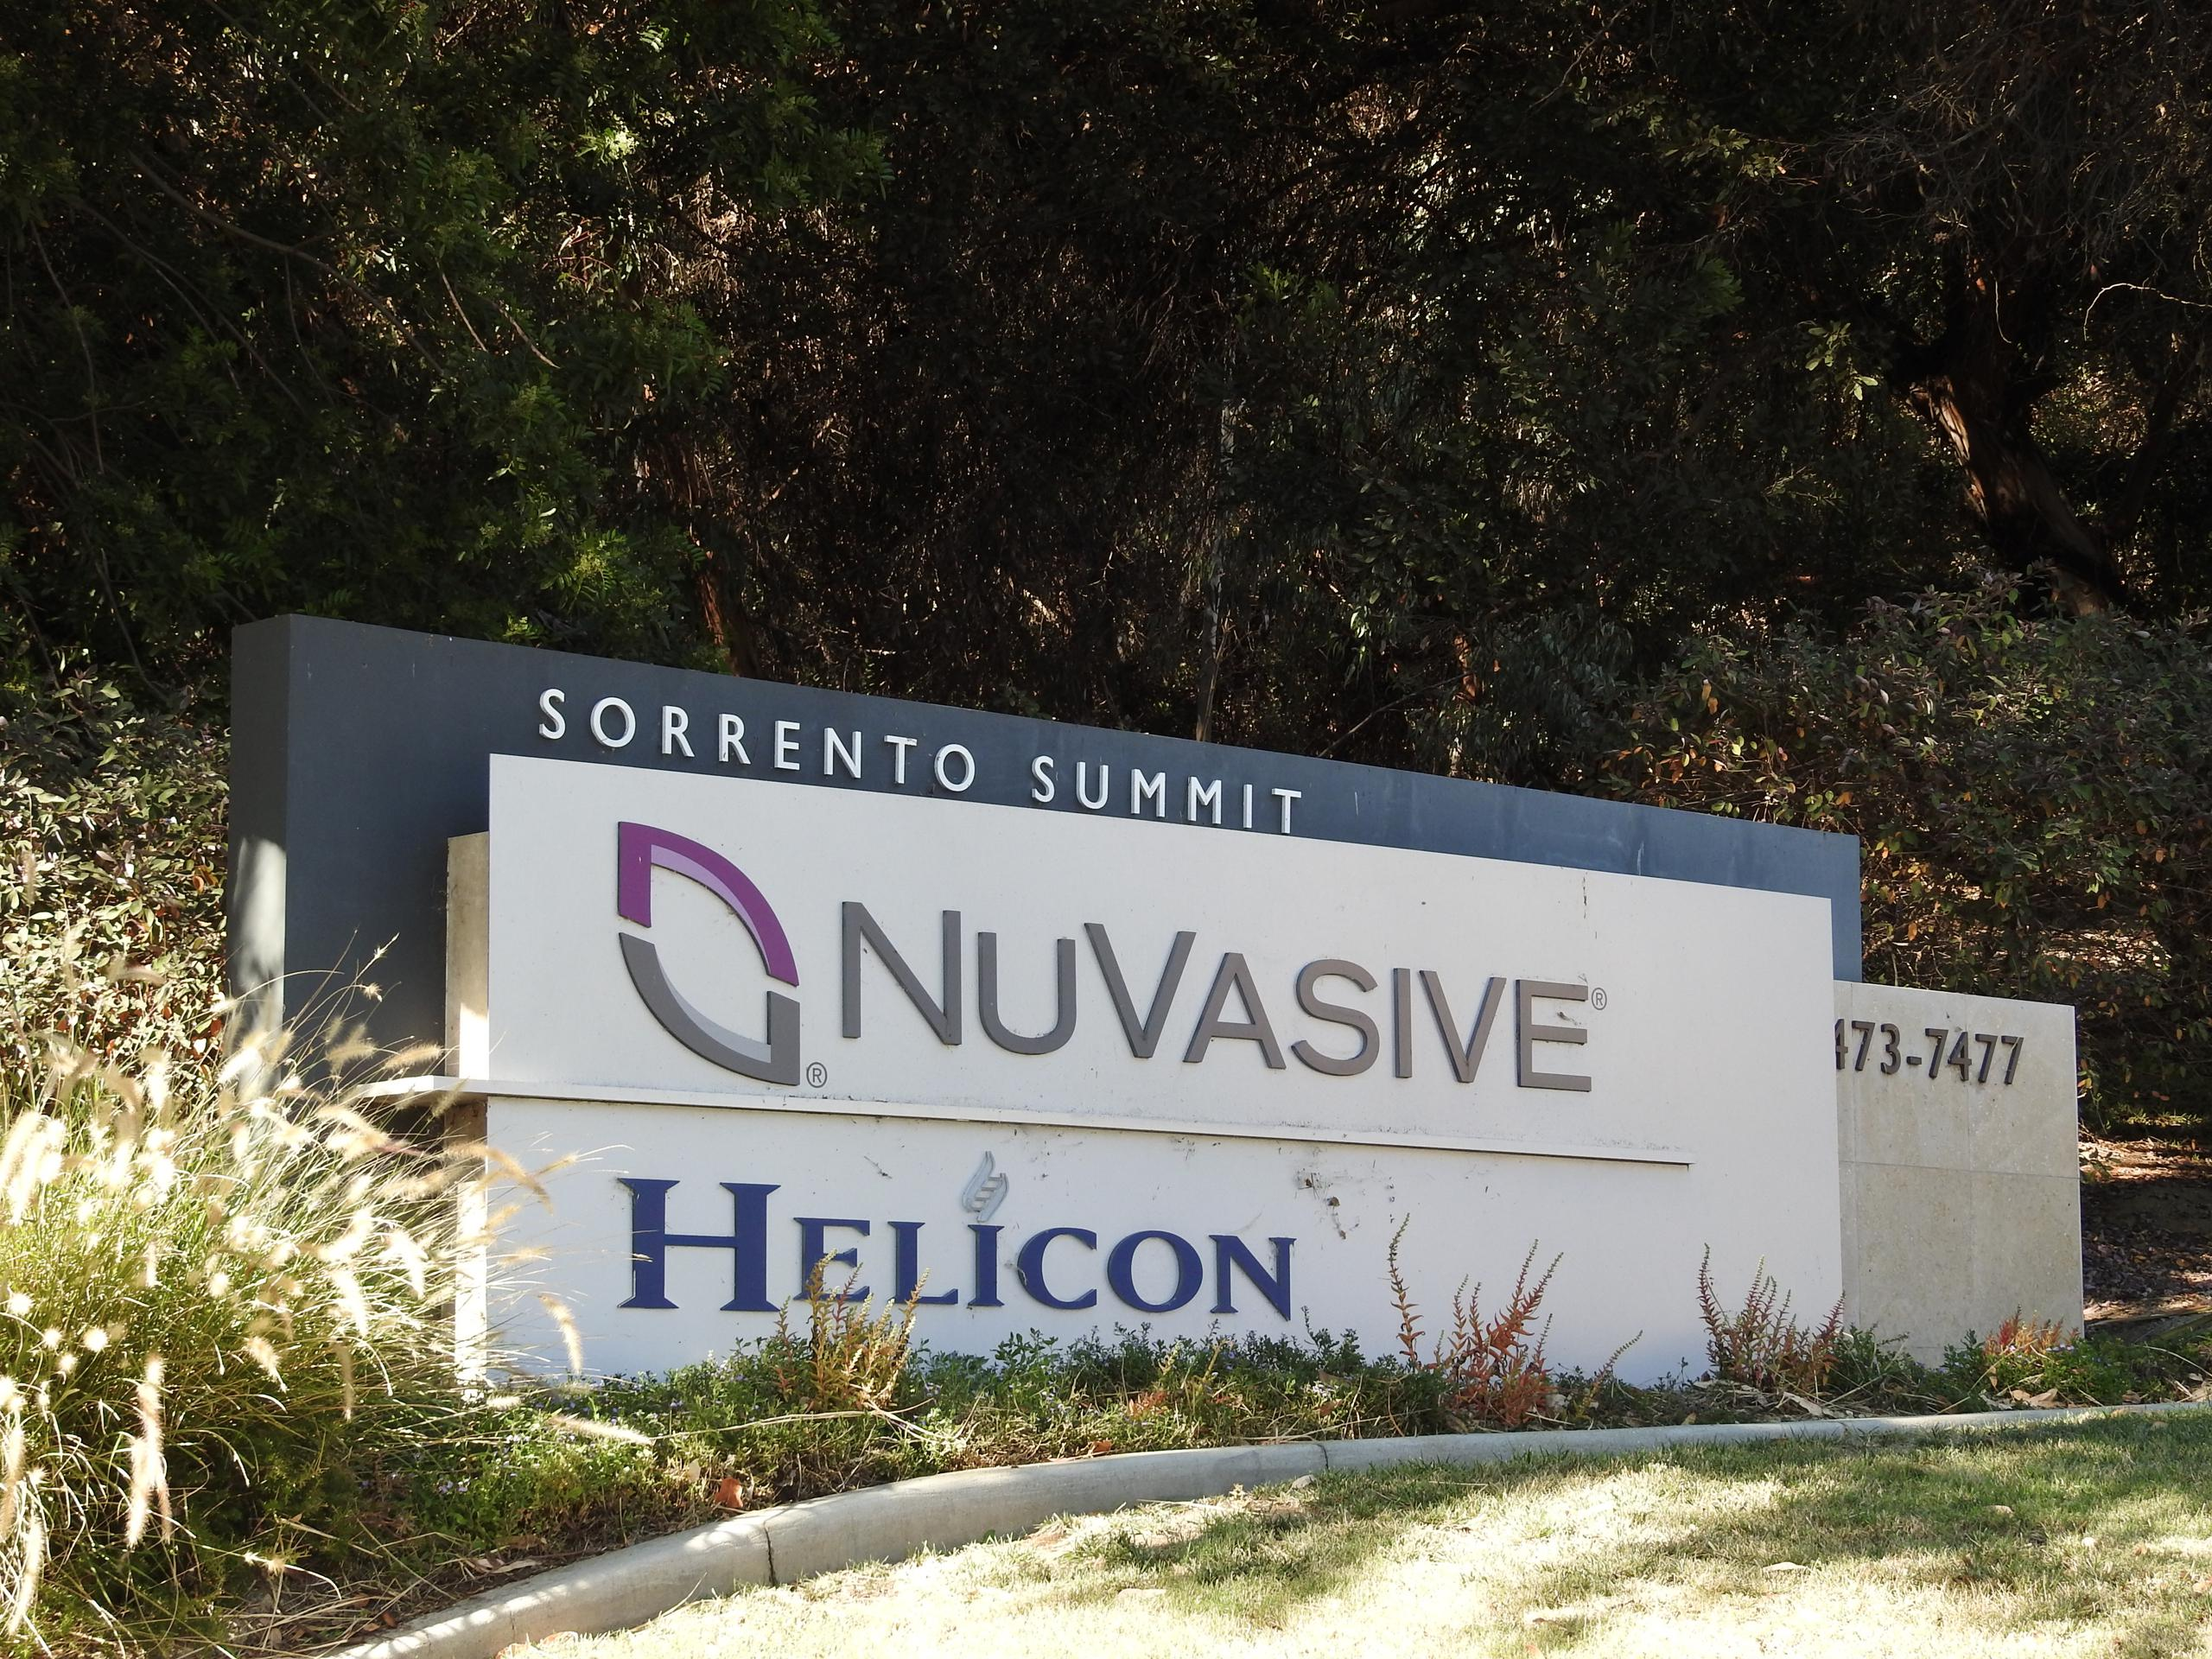 Entrance to NuVasive's corporate headquarters in San Diego, California.